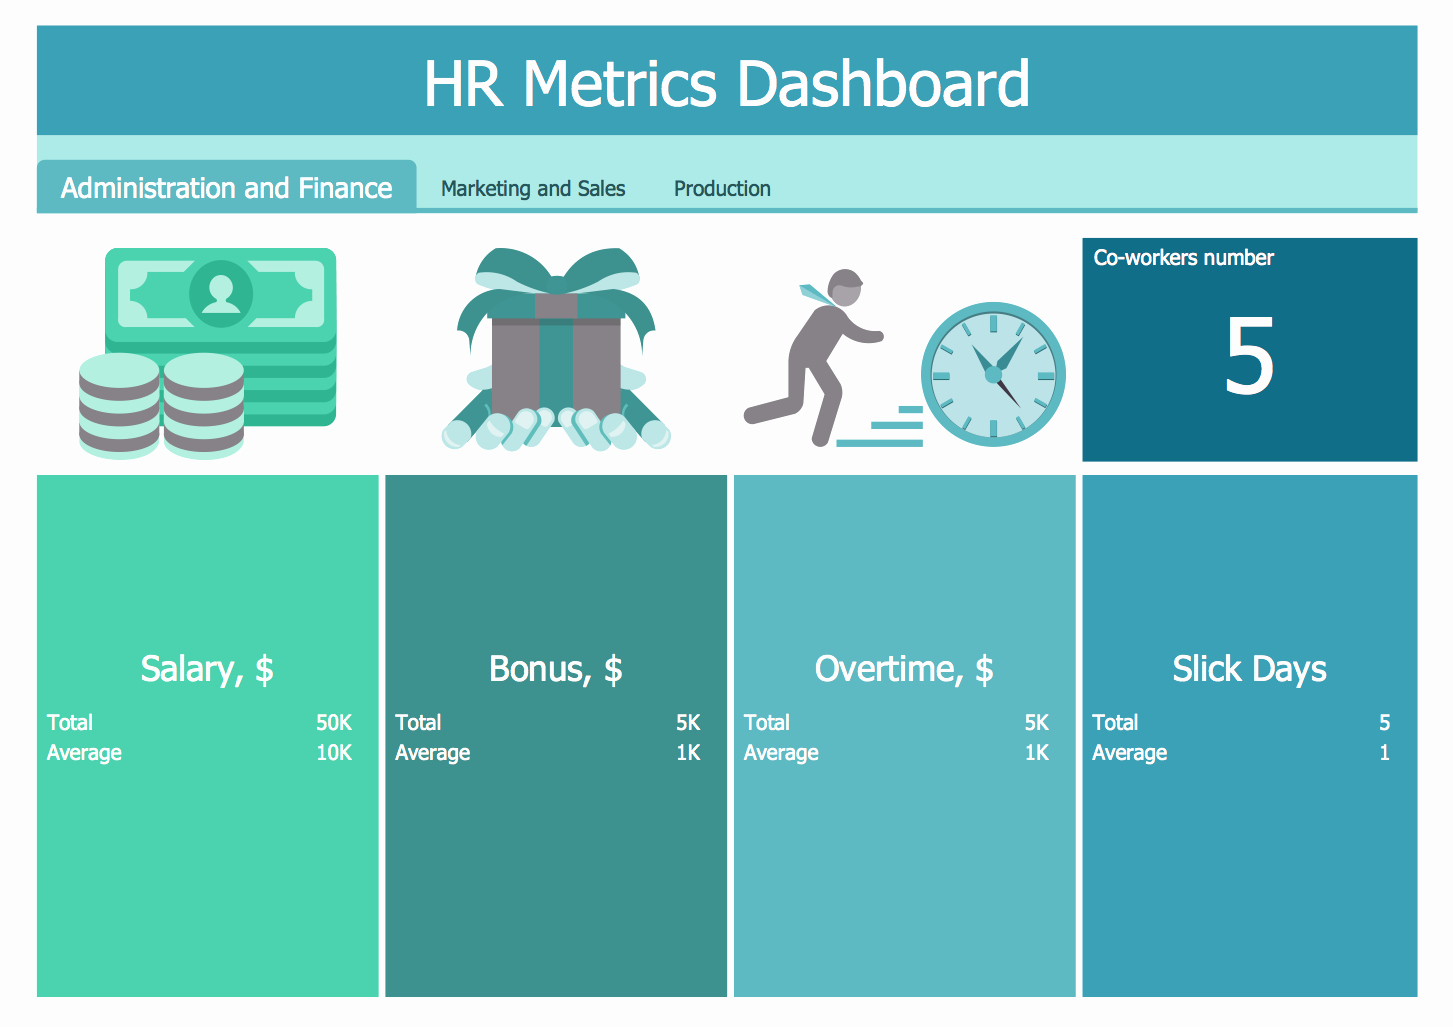 Human Resources Dashboard Template Awesome Hr Twitter 10 4 2017 6 22 53 Am